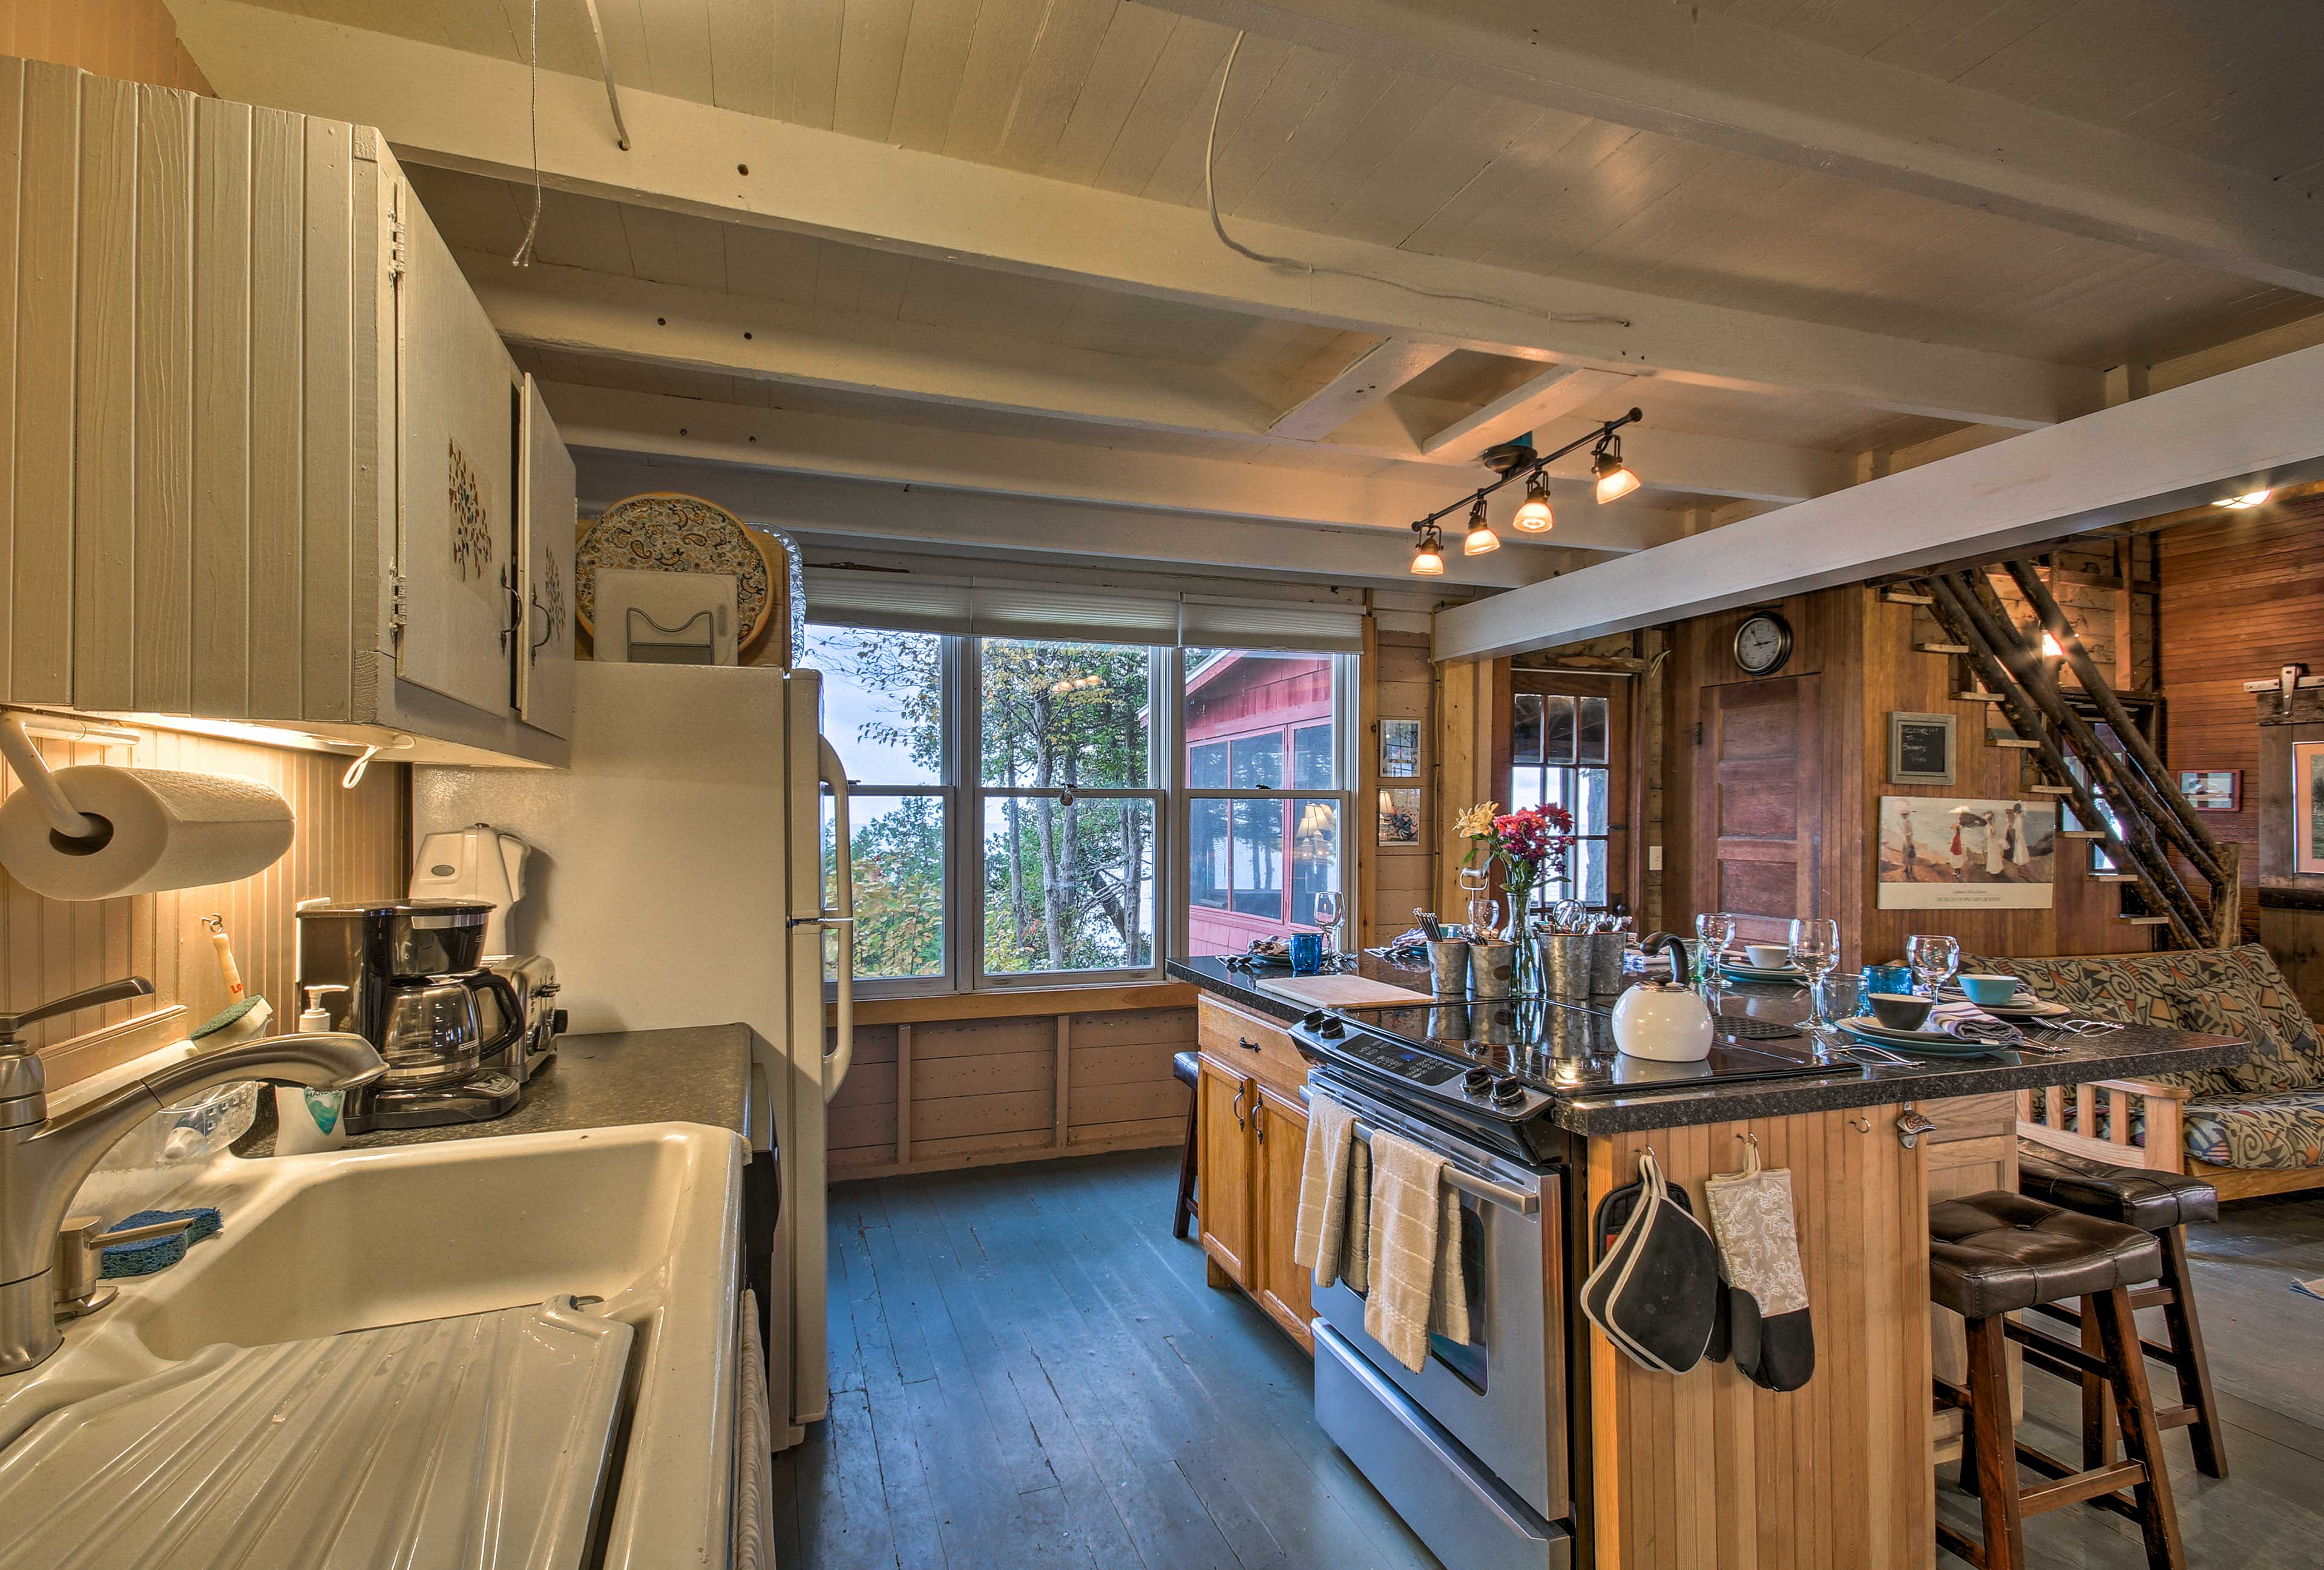 The fully equipped kitchen will make your meal preparations a breeze.